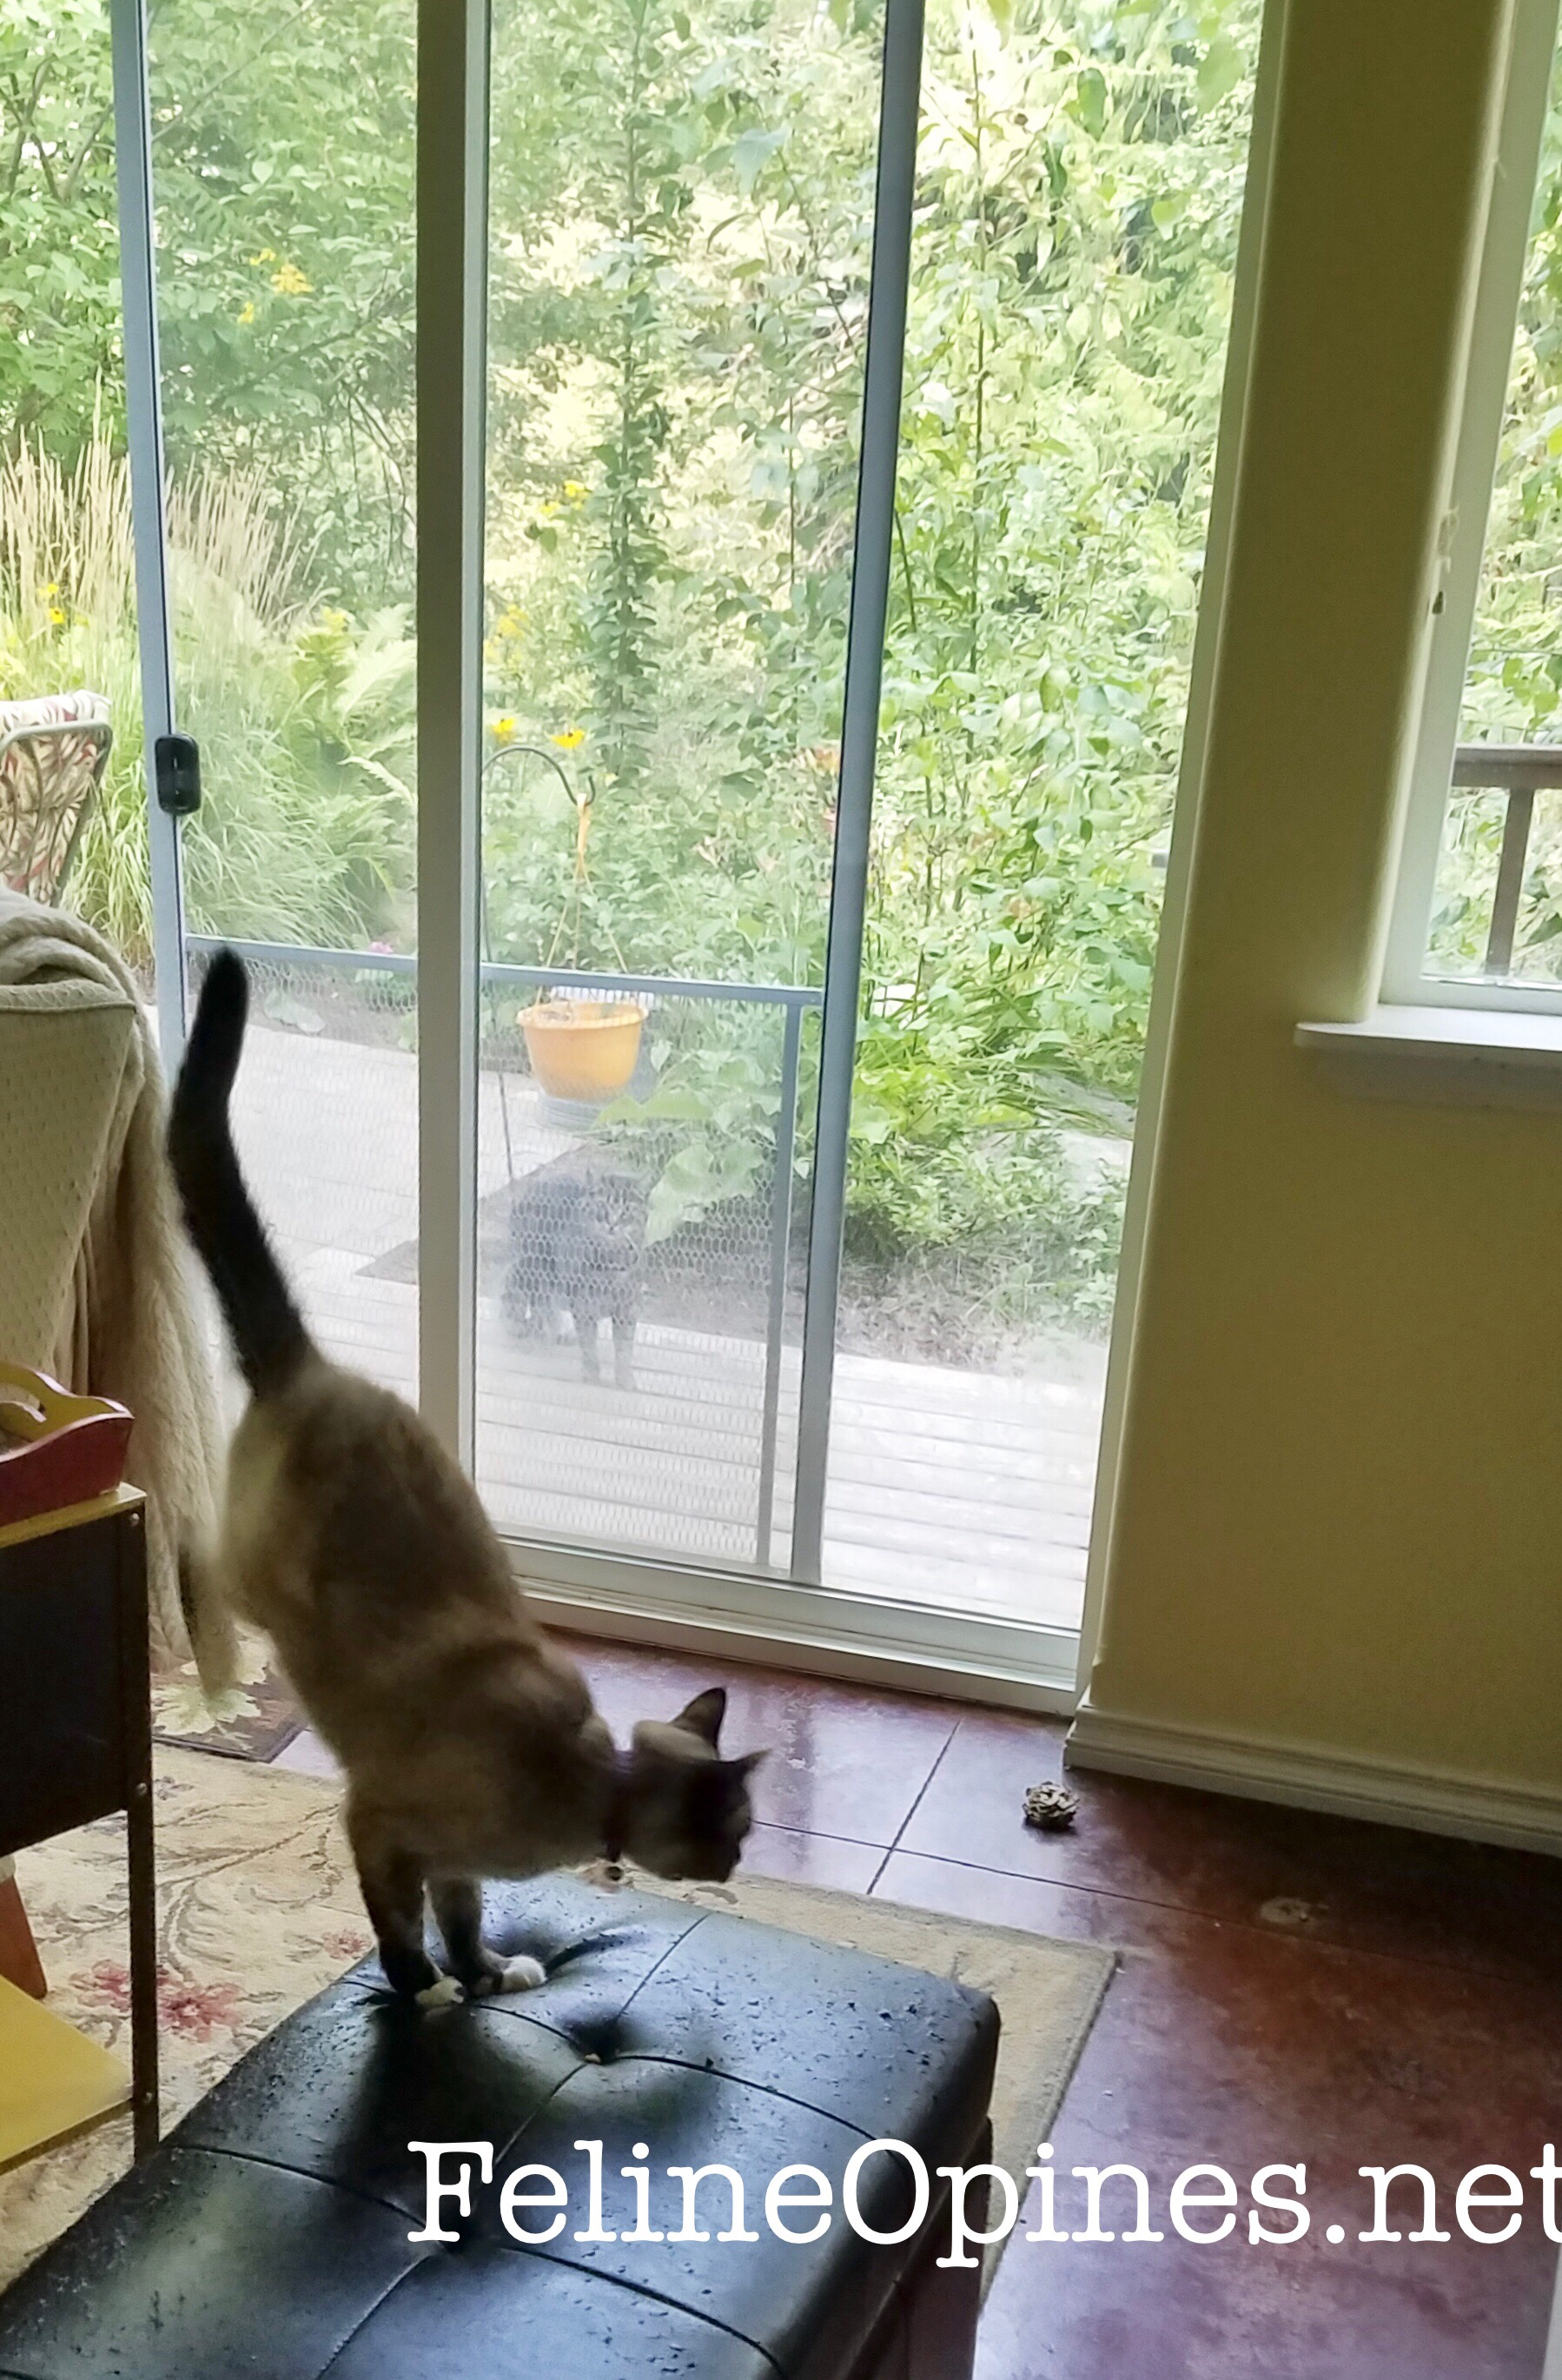 Siamese cat sees Tabby cat